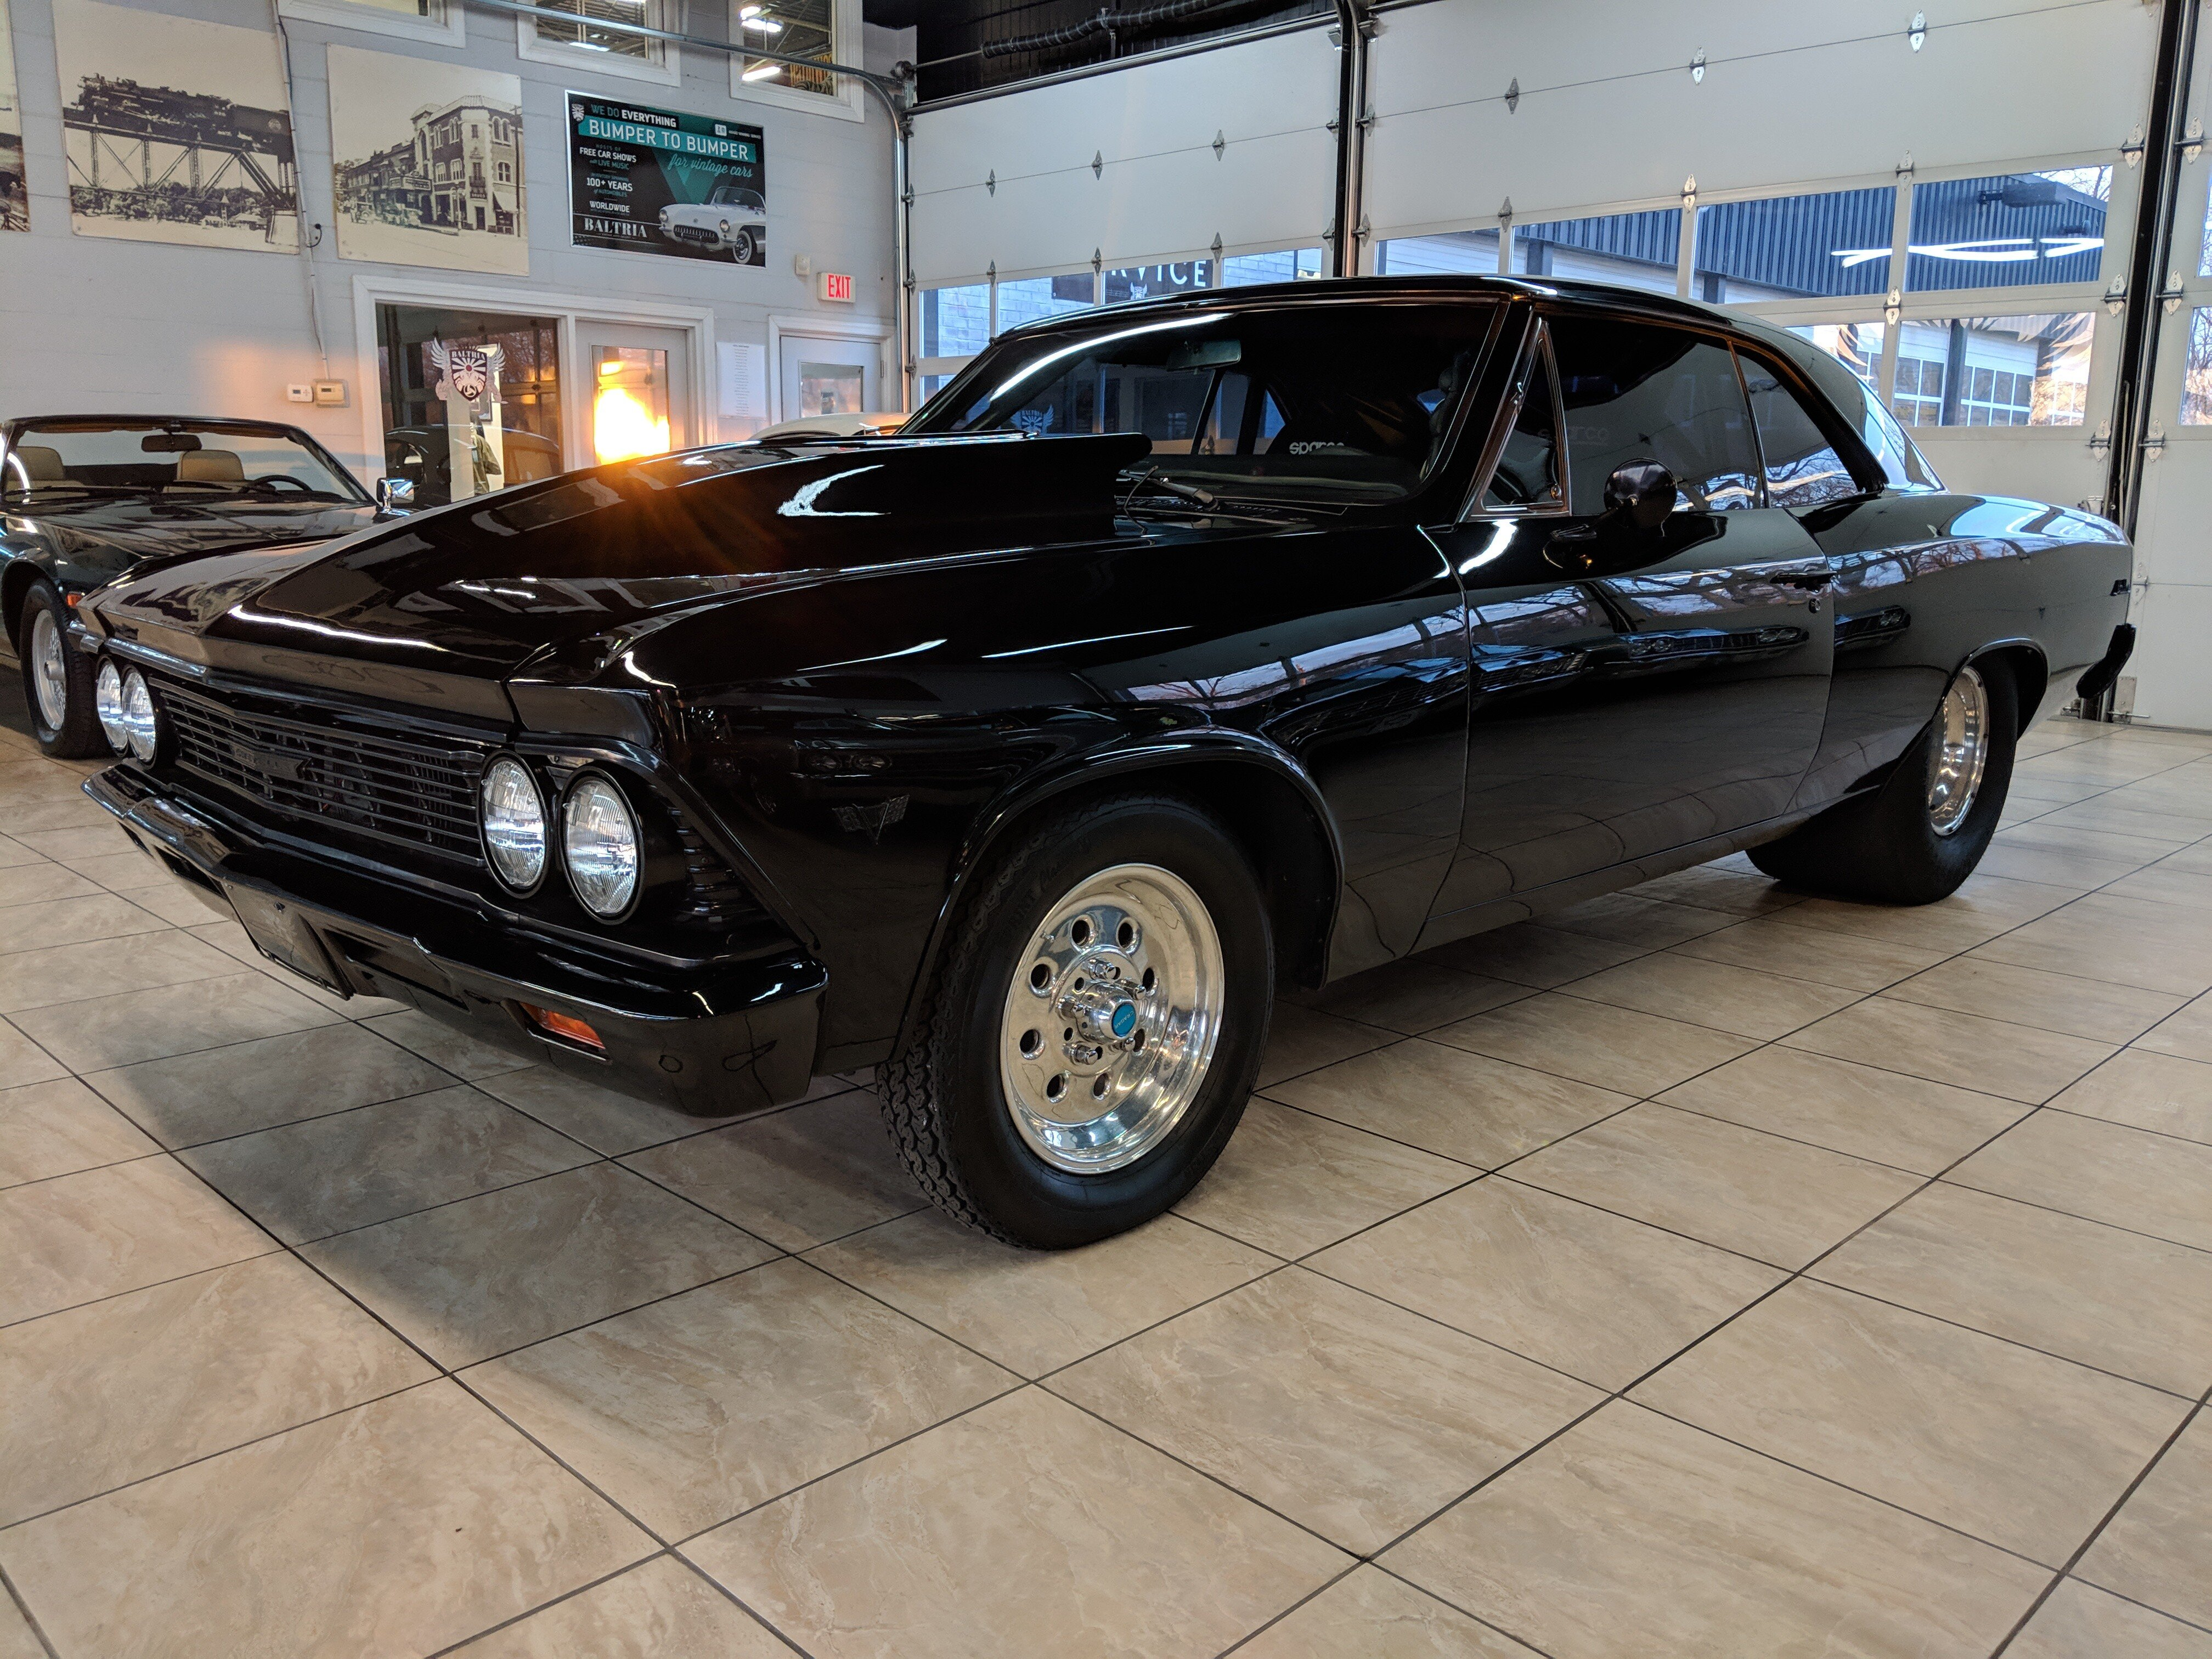 1966 Chevrolet Chevelle Classics For Sale On Autotrader 1964 Dodge Dart Wiring Diagram